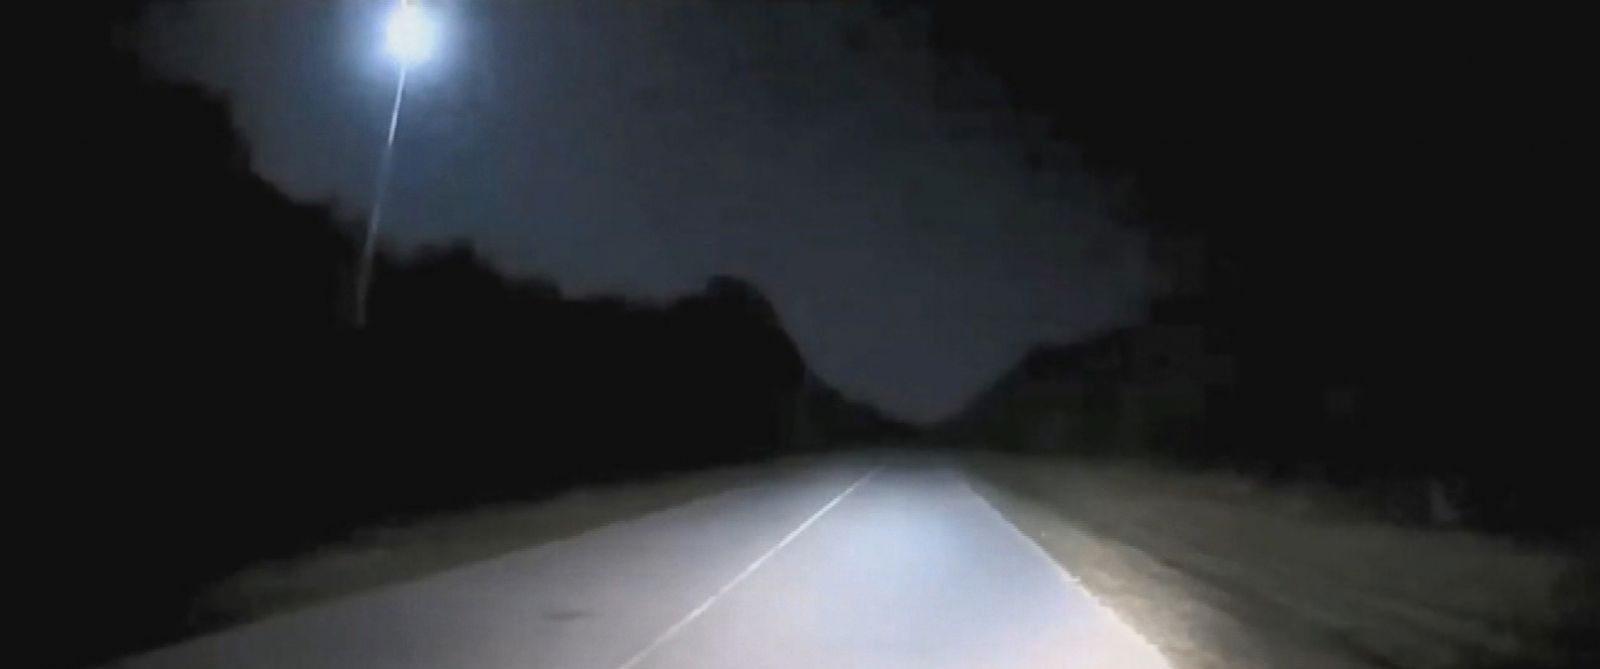 PHOTO: Dashcam video captured a fireball in the sky, Nov. 21, 2016 in Florida.